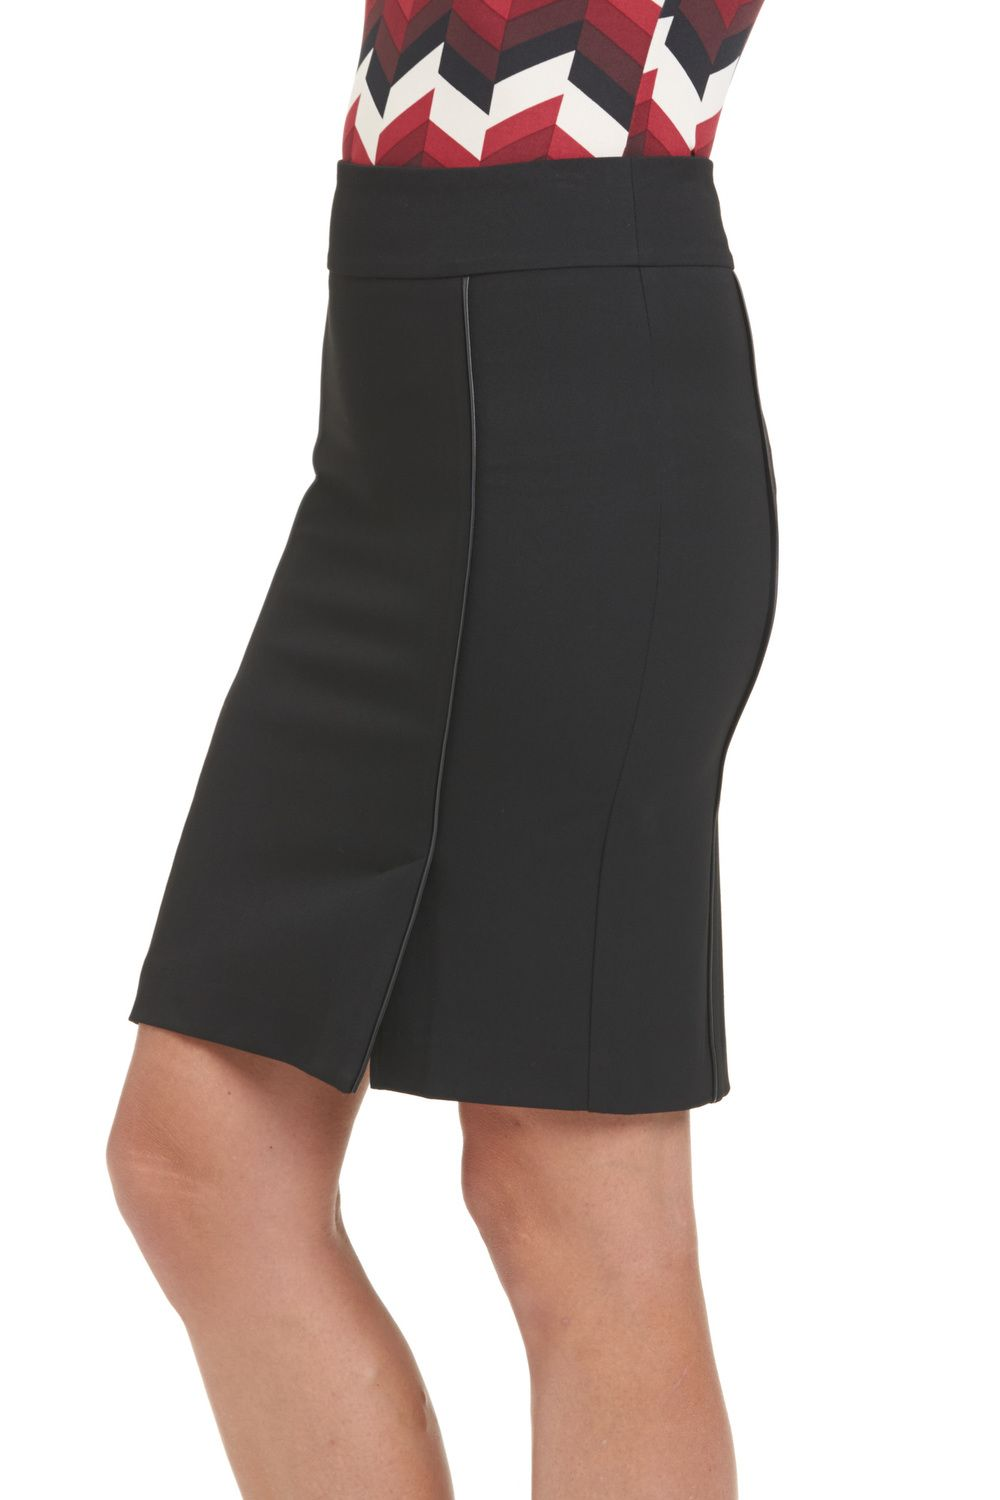 57f902978 Tailored skirt in Rekucci's Miraform fabric | Womens Clothing Store Online  | Rekucci Collection #shop #miraform #rekuccicollection #pencilskirt #style